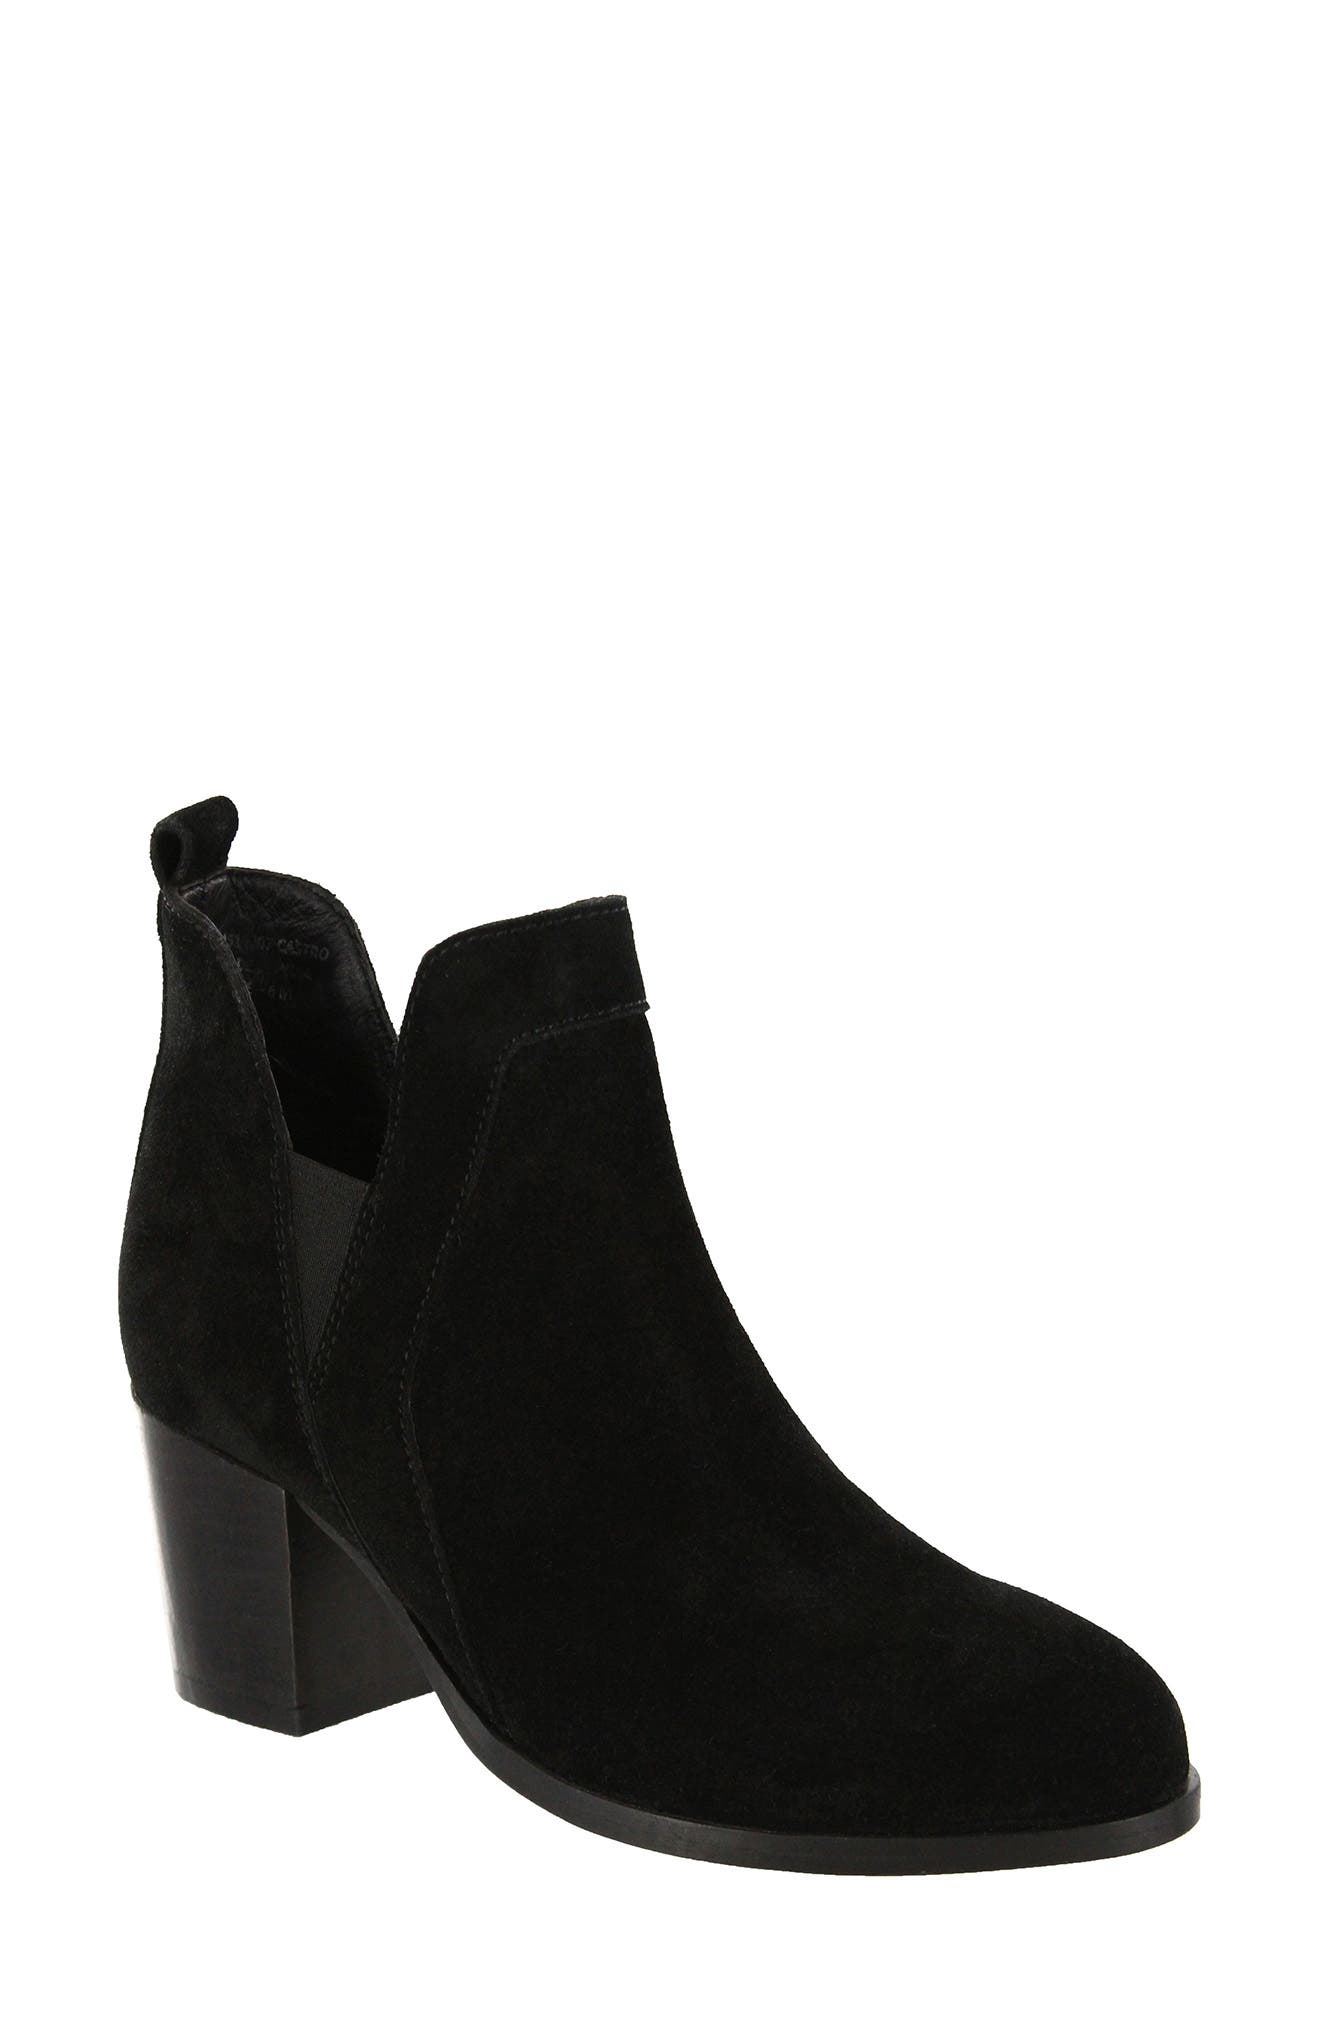 Kastro Bootie,                             Main thumbnail 1, color,                             001